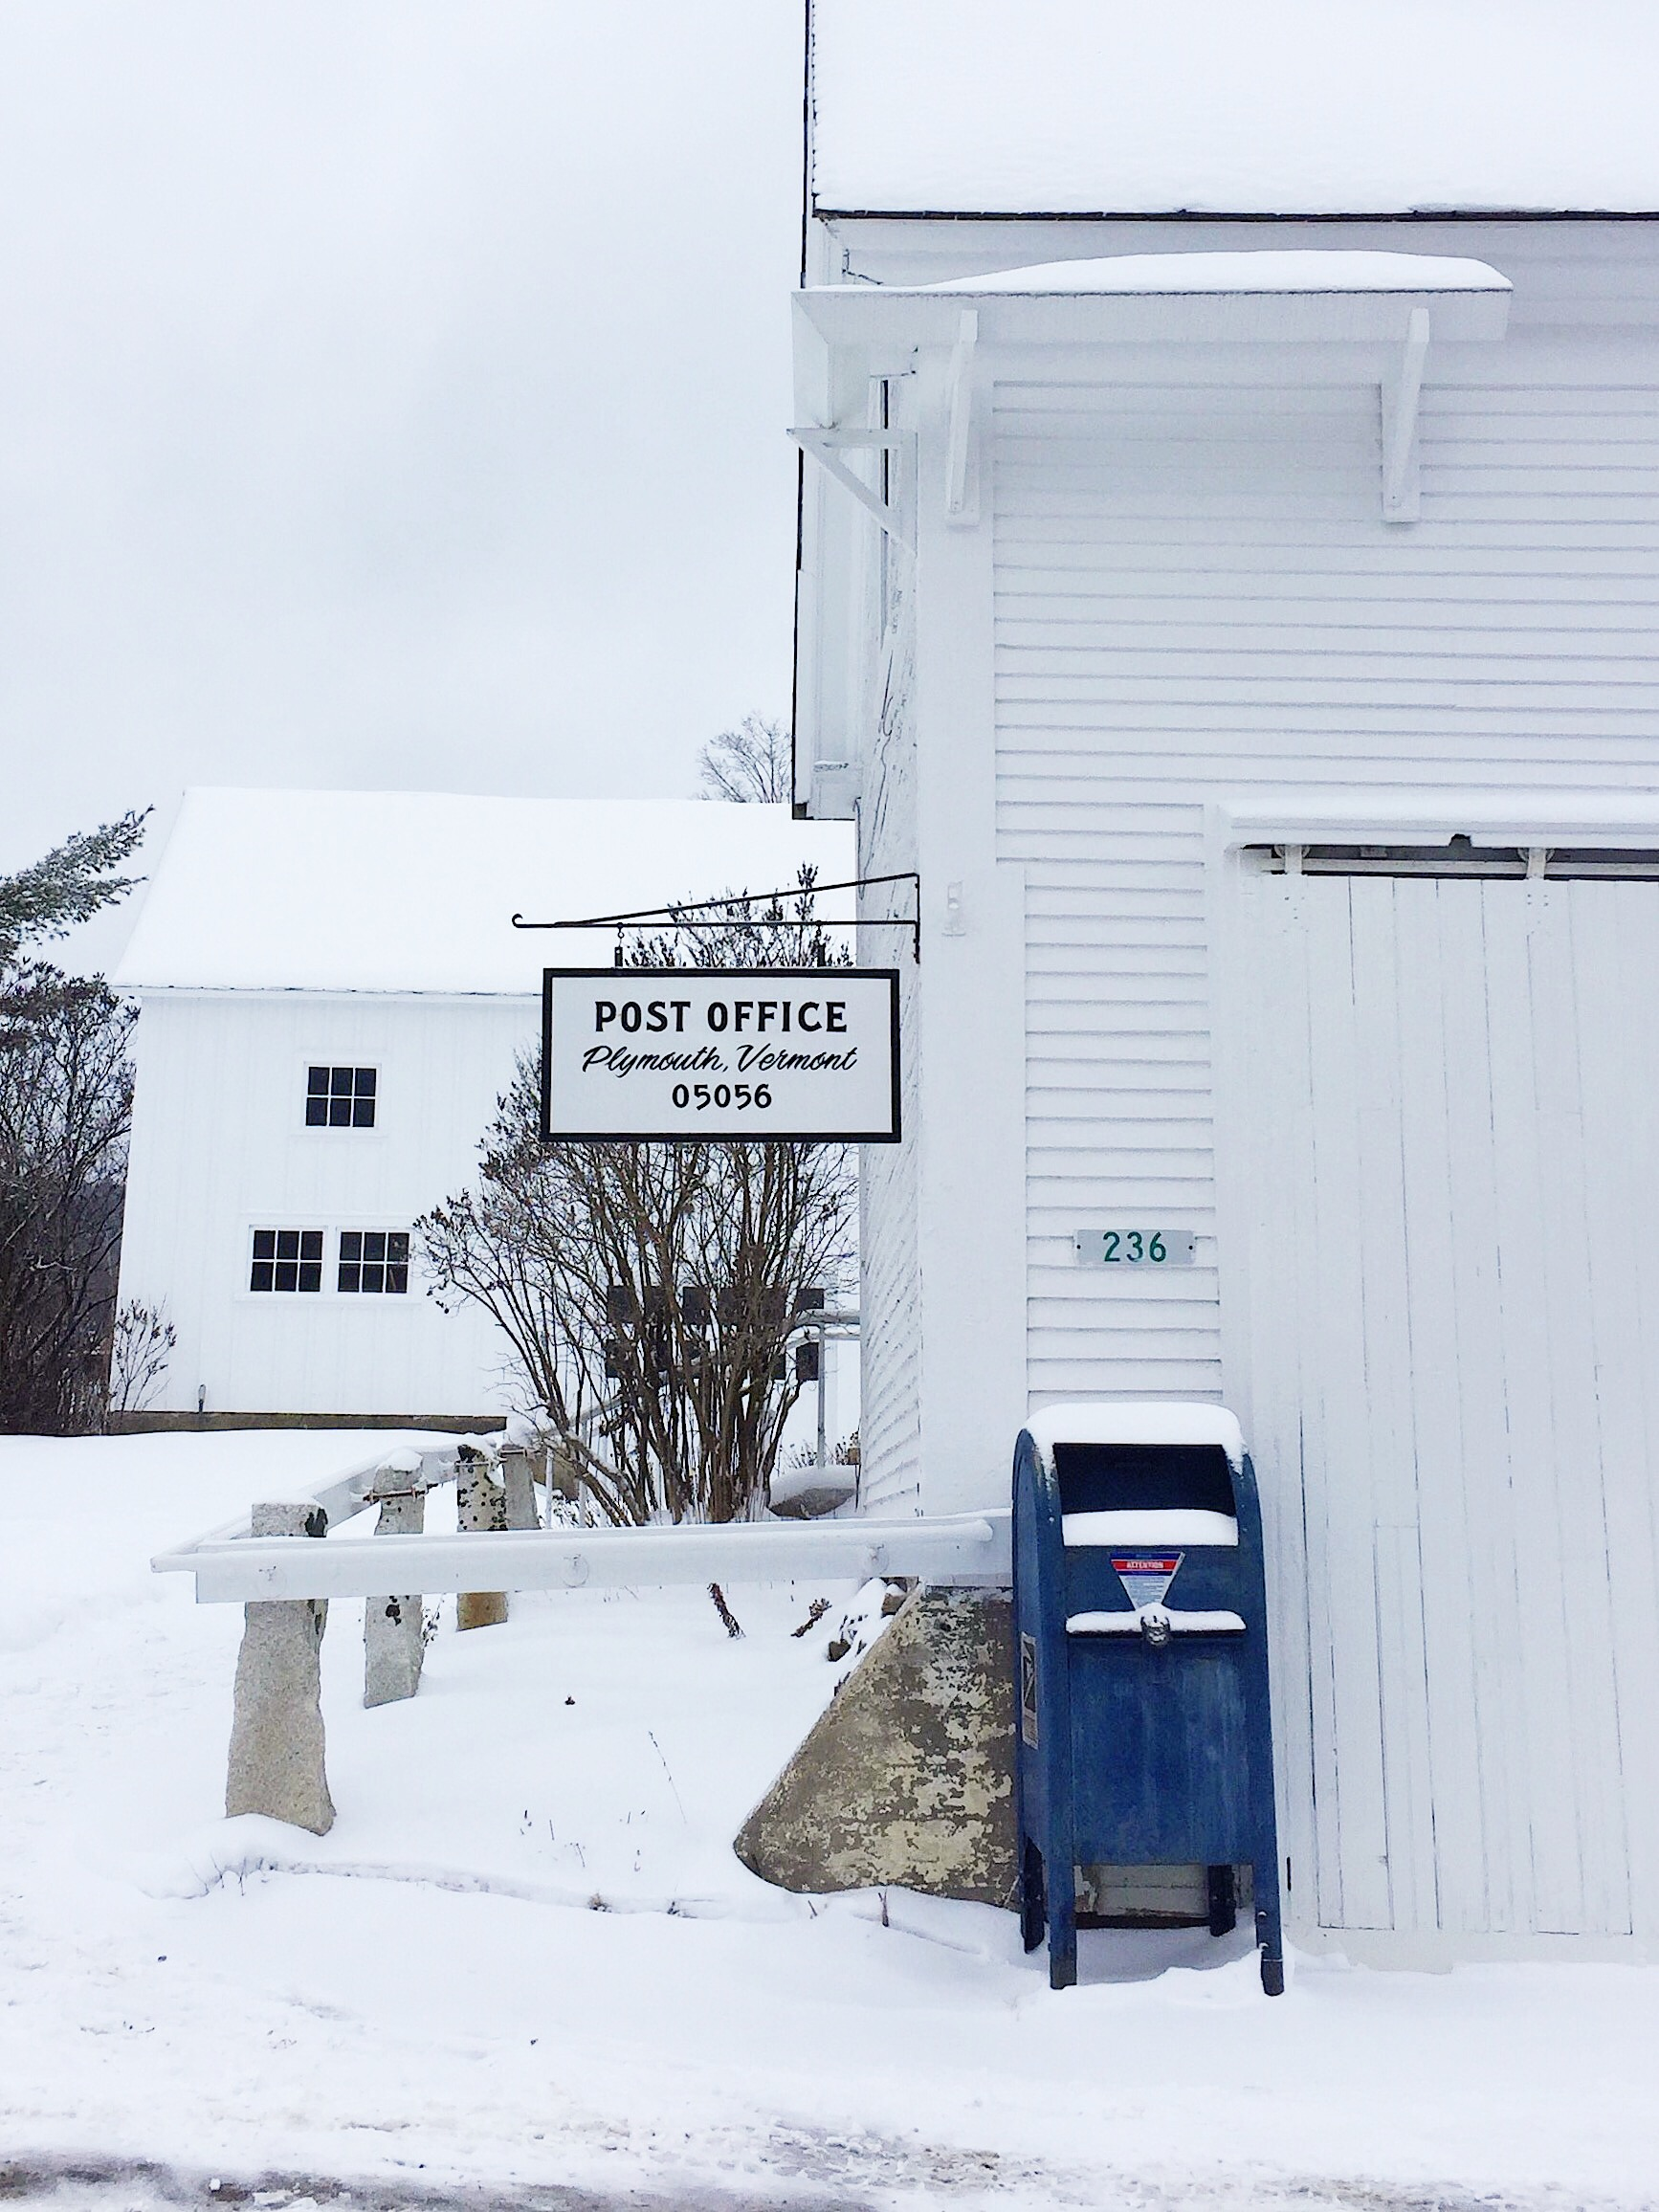 plymouth vermont post office